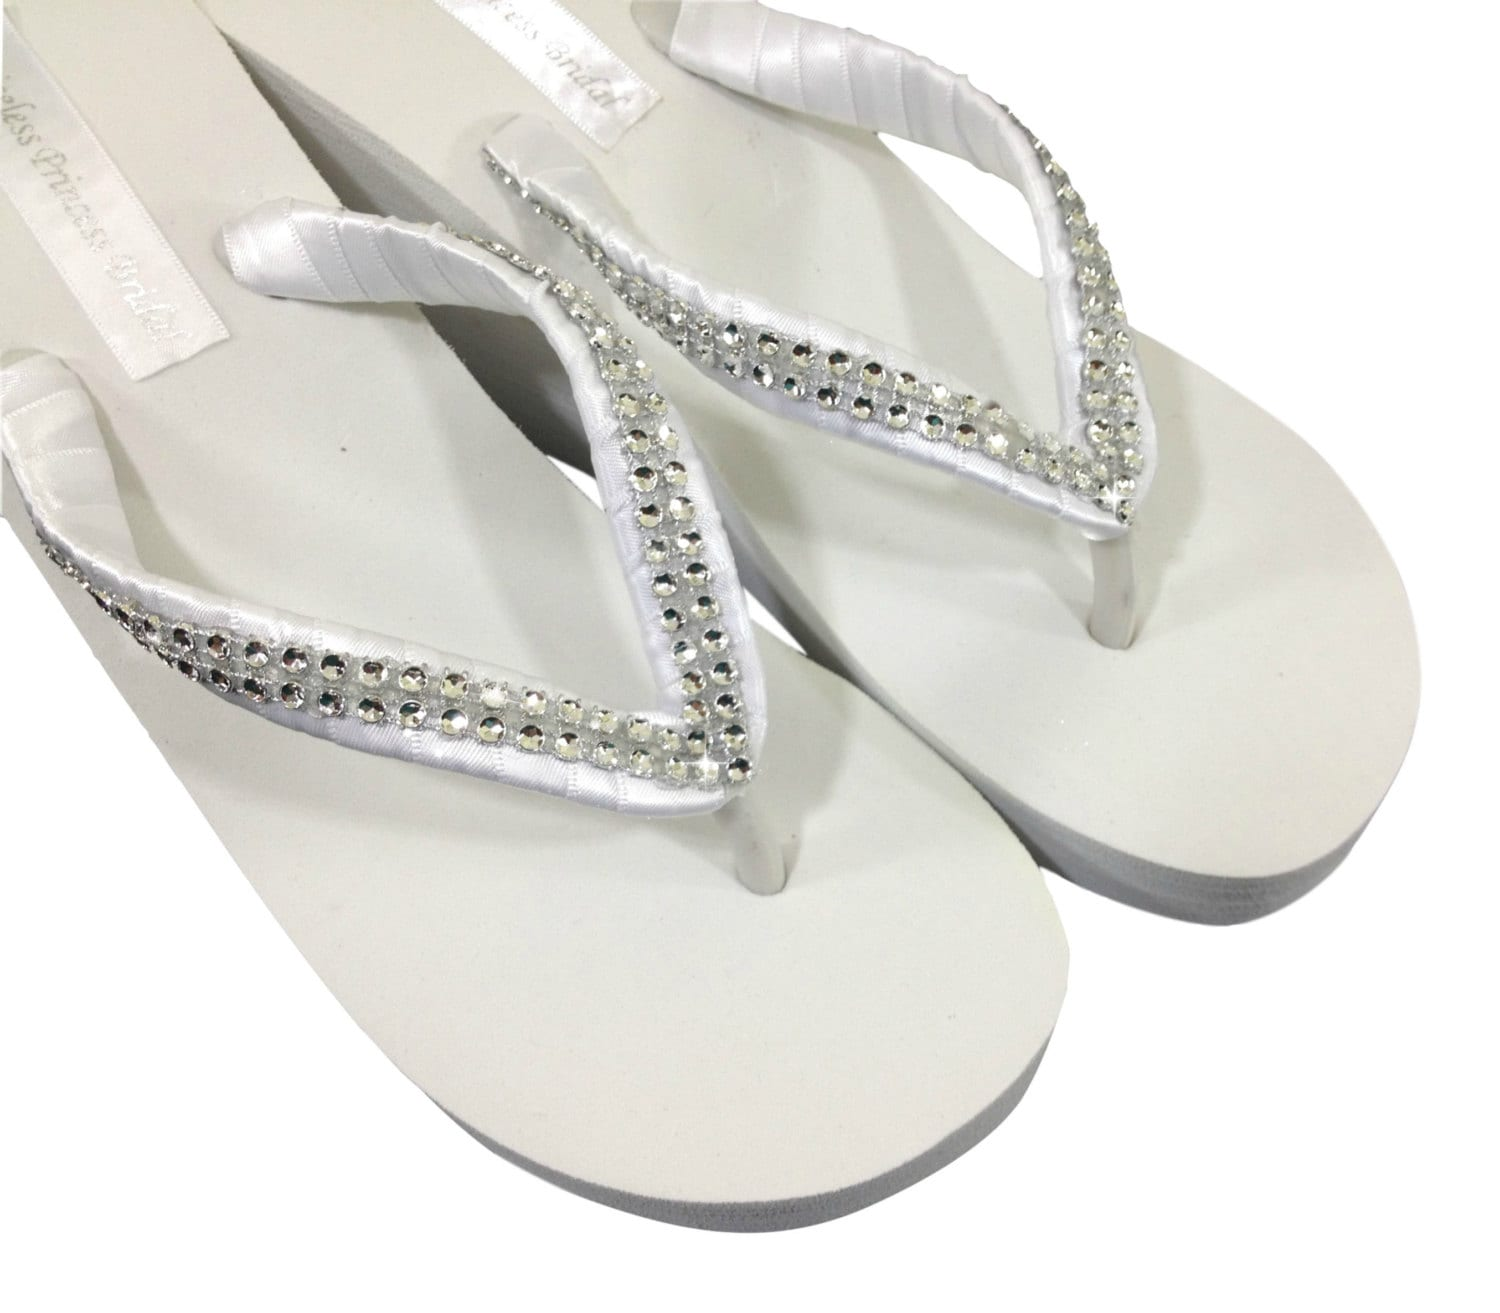 Awesome Silver Flip Flops Wedding Pictures - Styles & Ideas 2018 ...